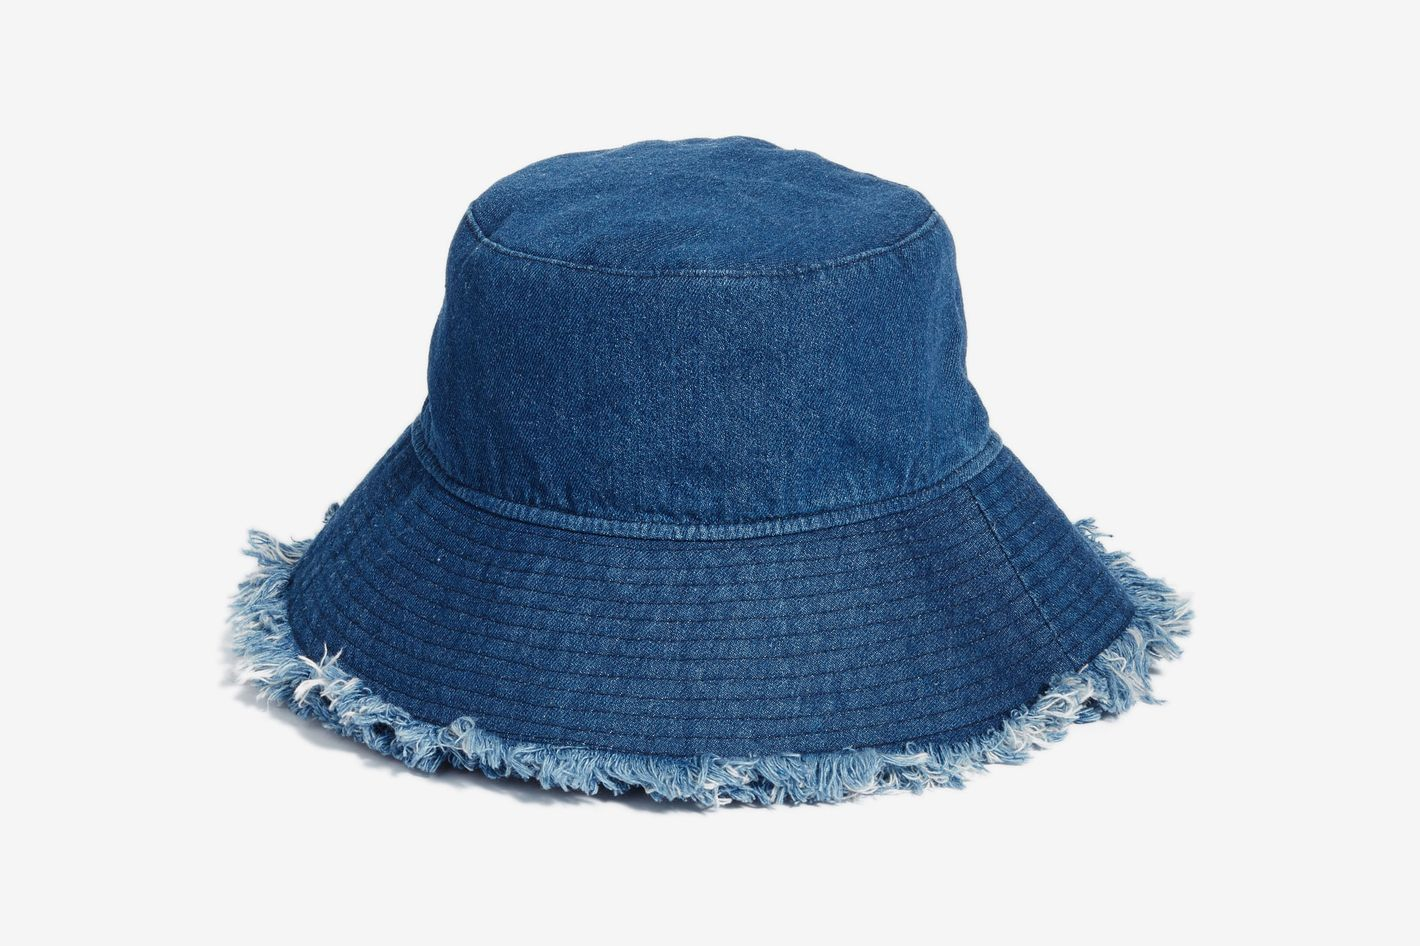 28 Best Sun Hats 2018 — Woven Straw Hats cafdcec7a84